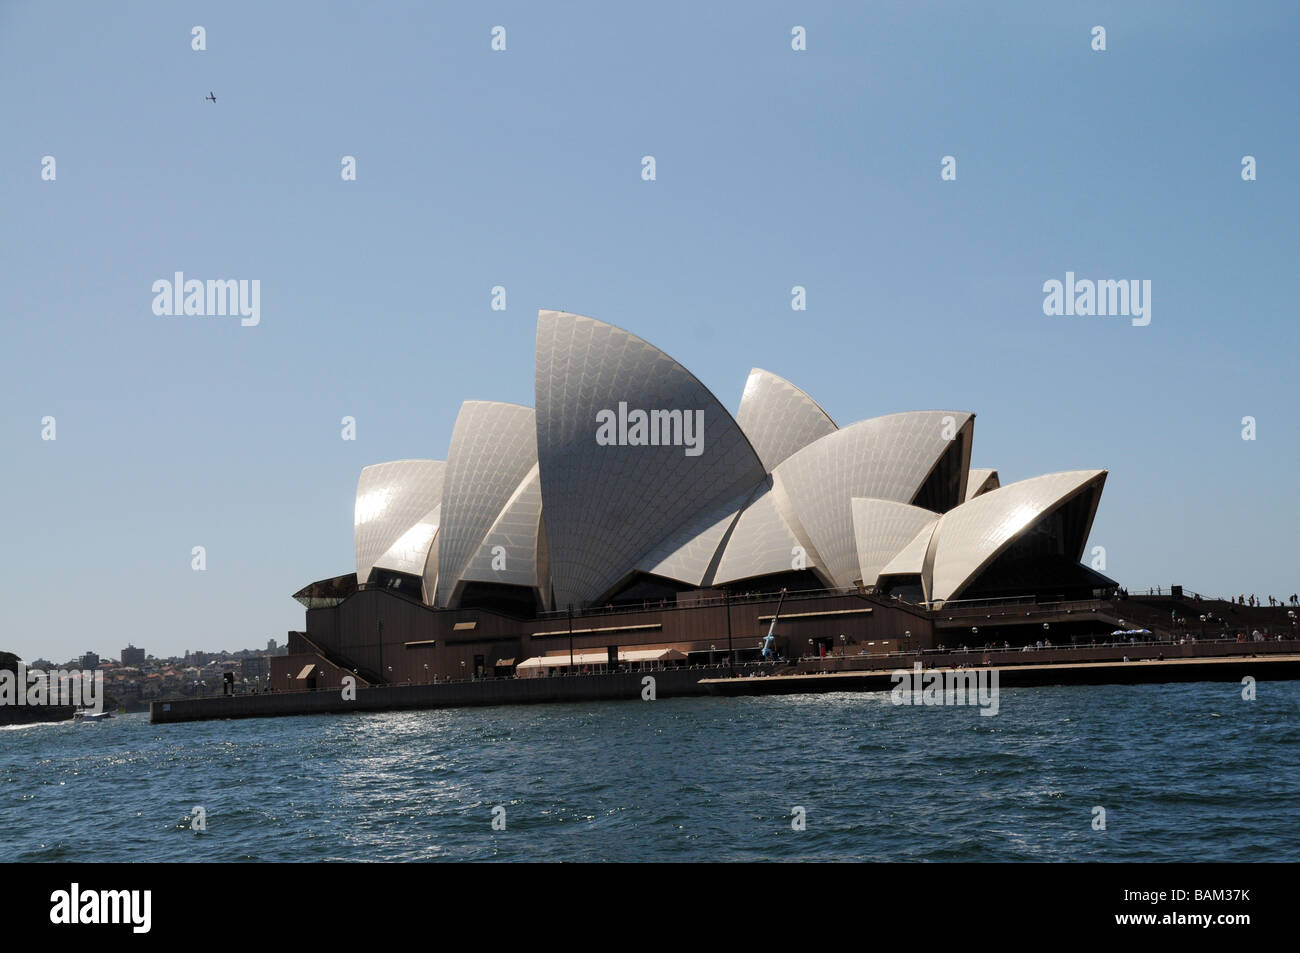 Sydney Australia, View of Opera House built in 2003, designed by Jorn Utzon, one of the word's most distinctive - Stock Image